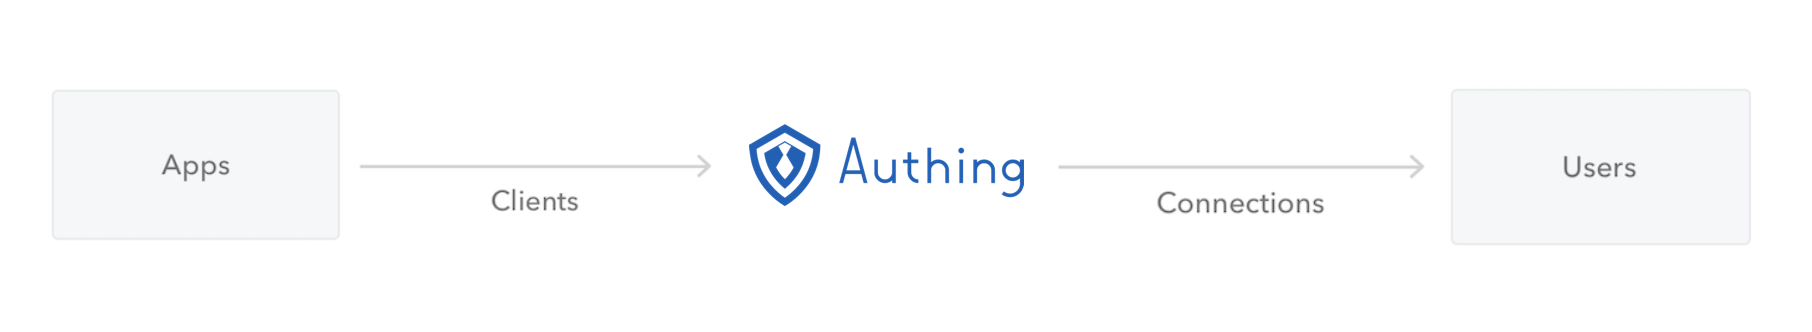 https://cdn.authing.cn/github/customers/authing-pos.png